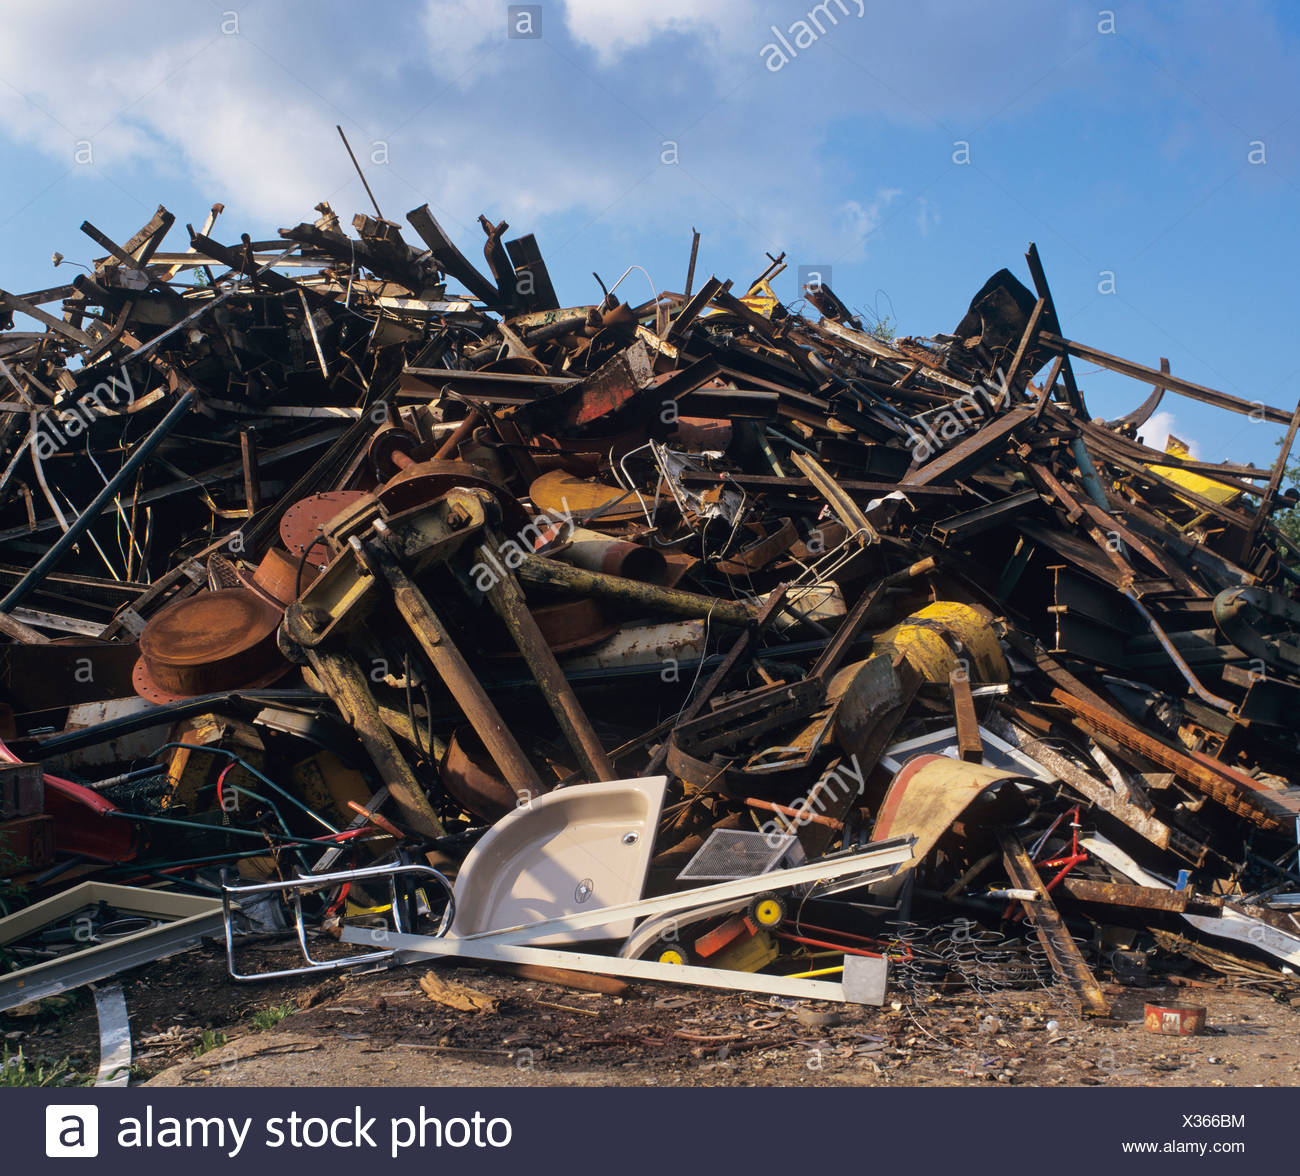 Heap of scrap metal at a waste yard, waste separation, recycling - Stock Image